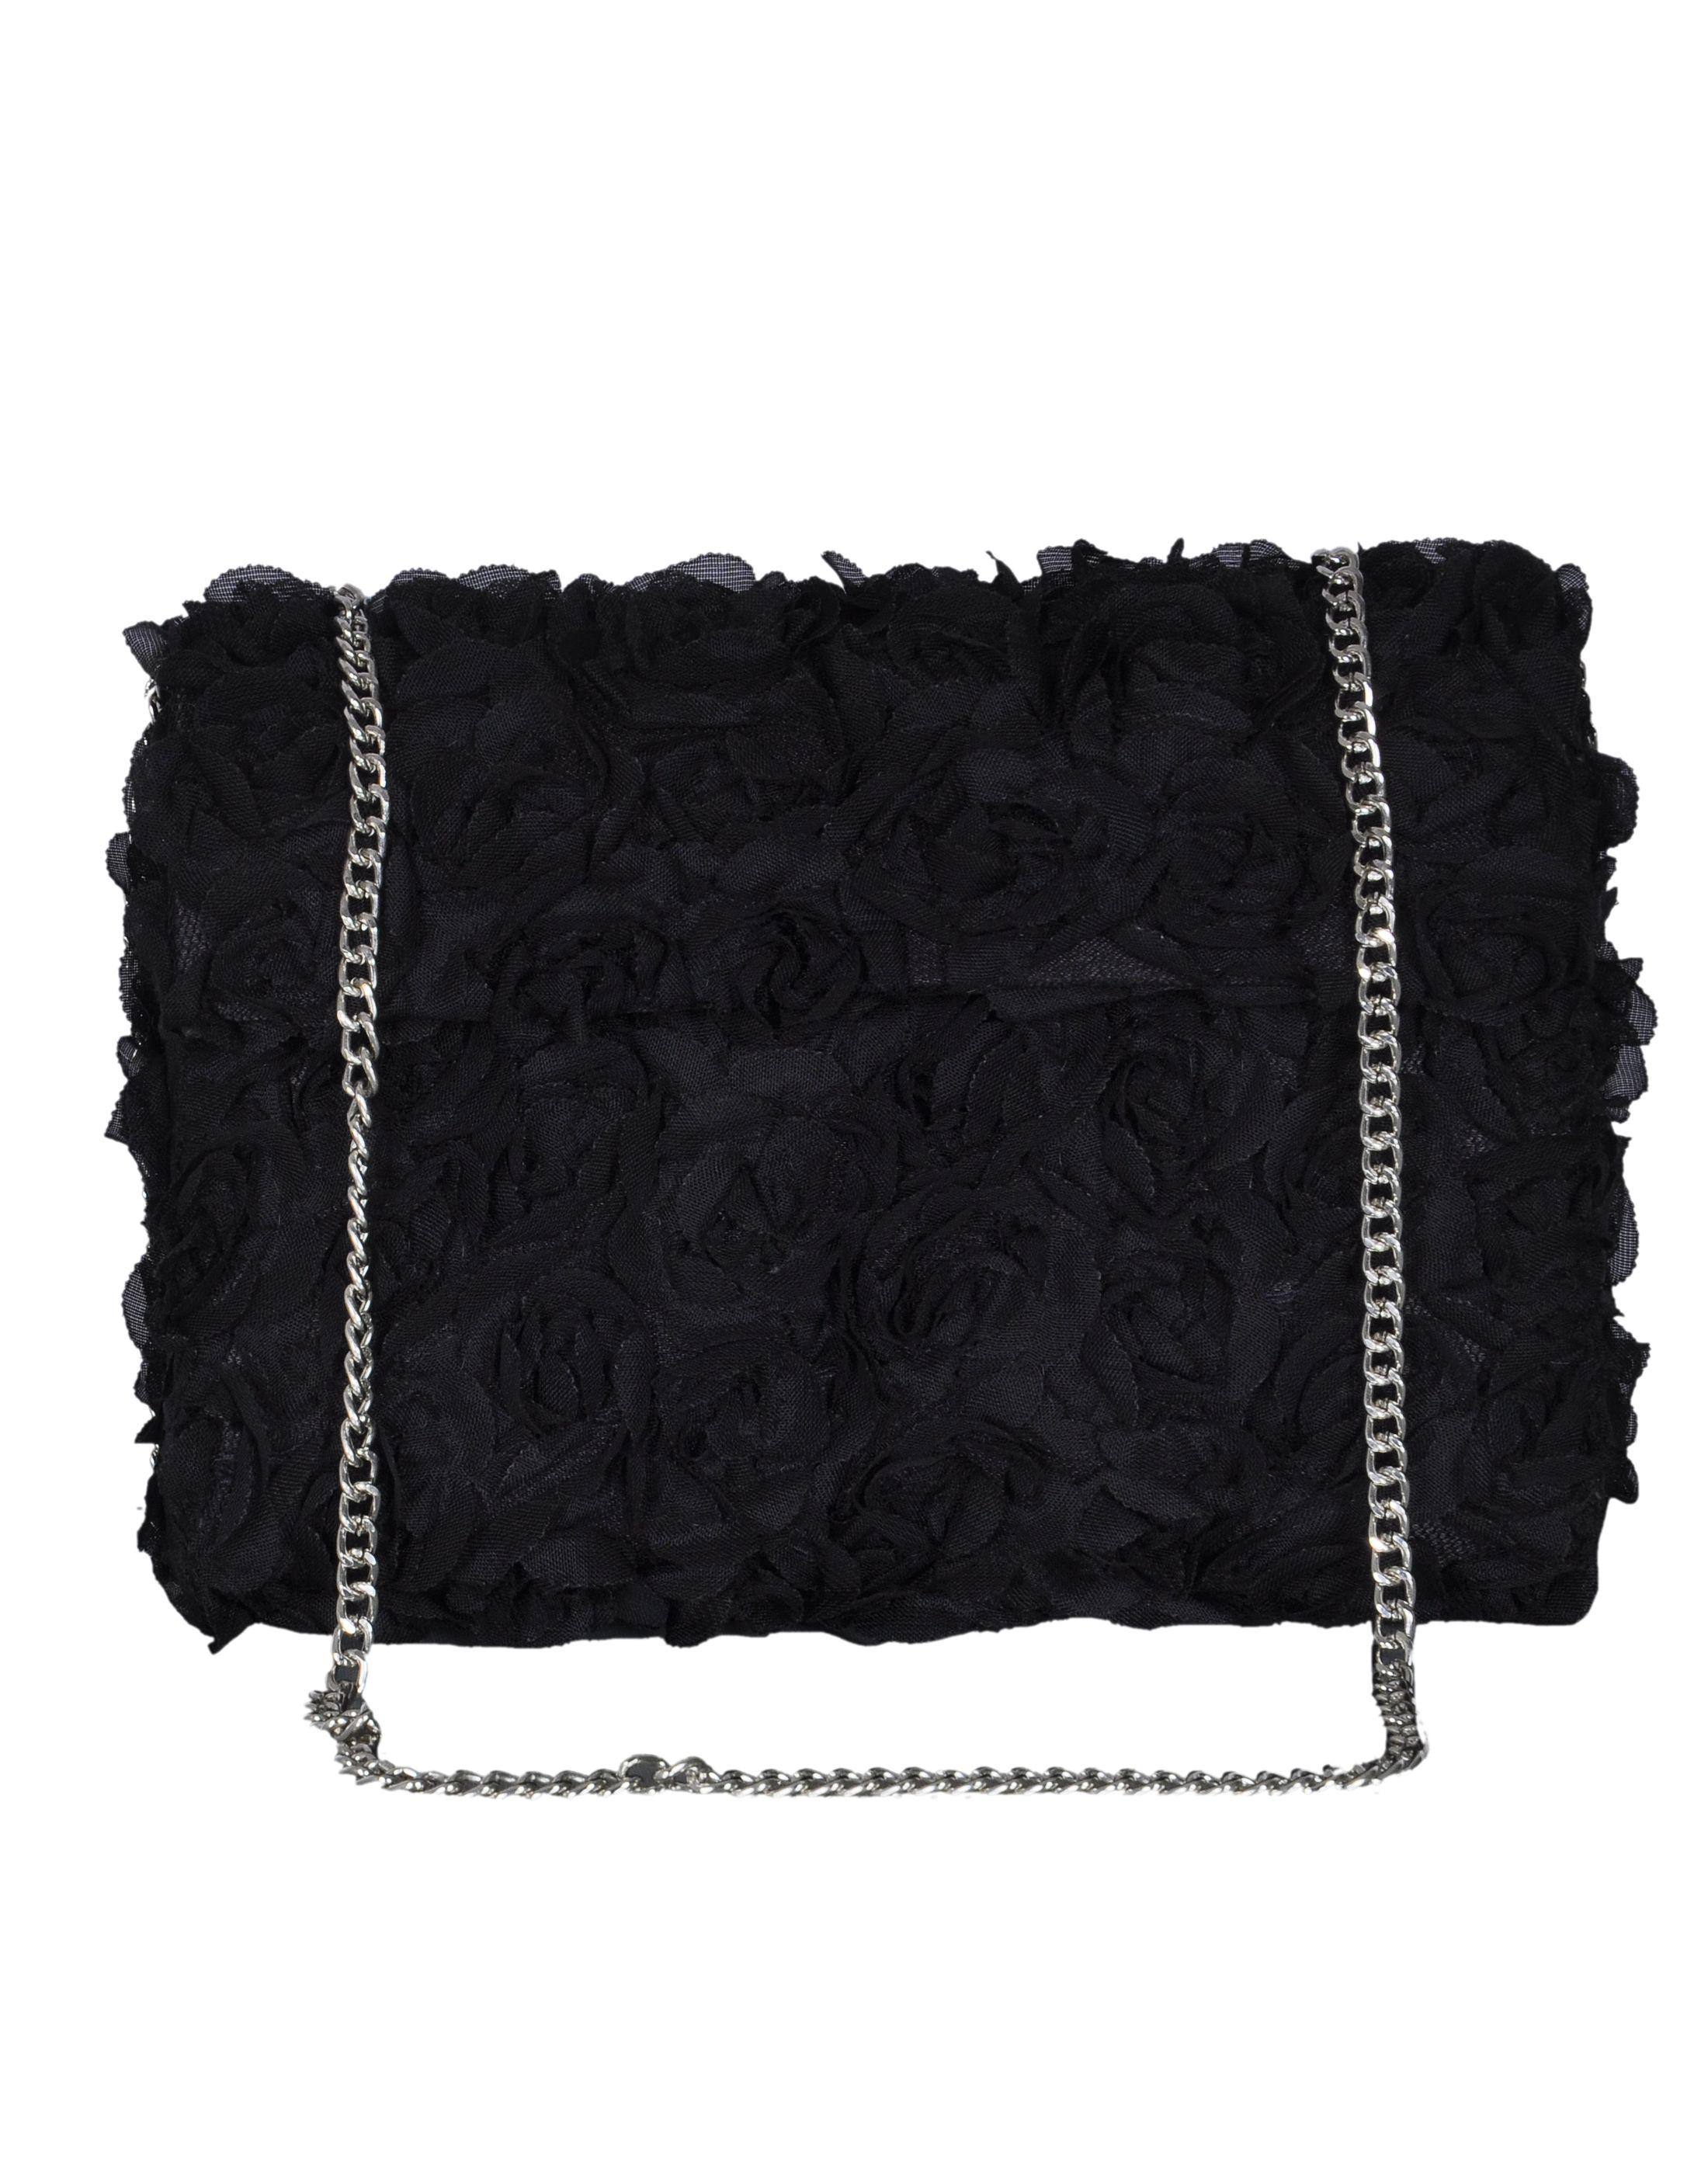 Duchess Black Fabric Box Clutch